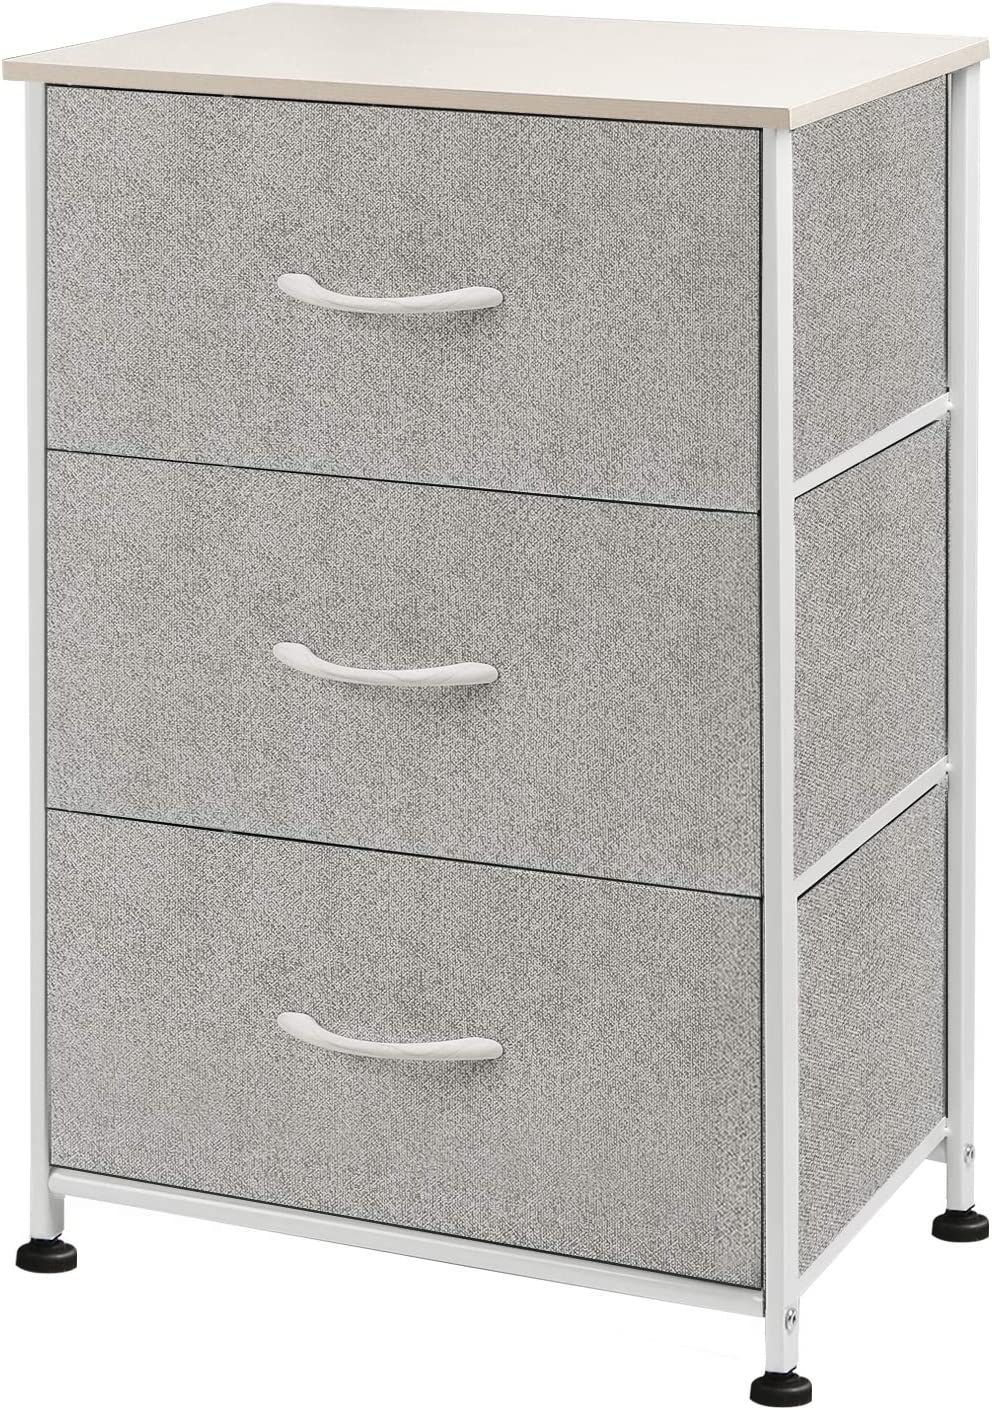 WLIVE Dresser with 3 Drawers, Fabric Storage Tower, Organizer Unit for Bedroom, Hallway, Entryway, Closets, Sturdy Steel Frame, Wood Top, Easy Pull Handle